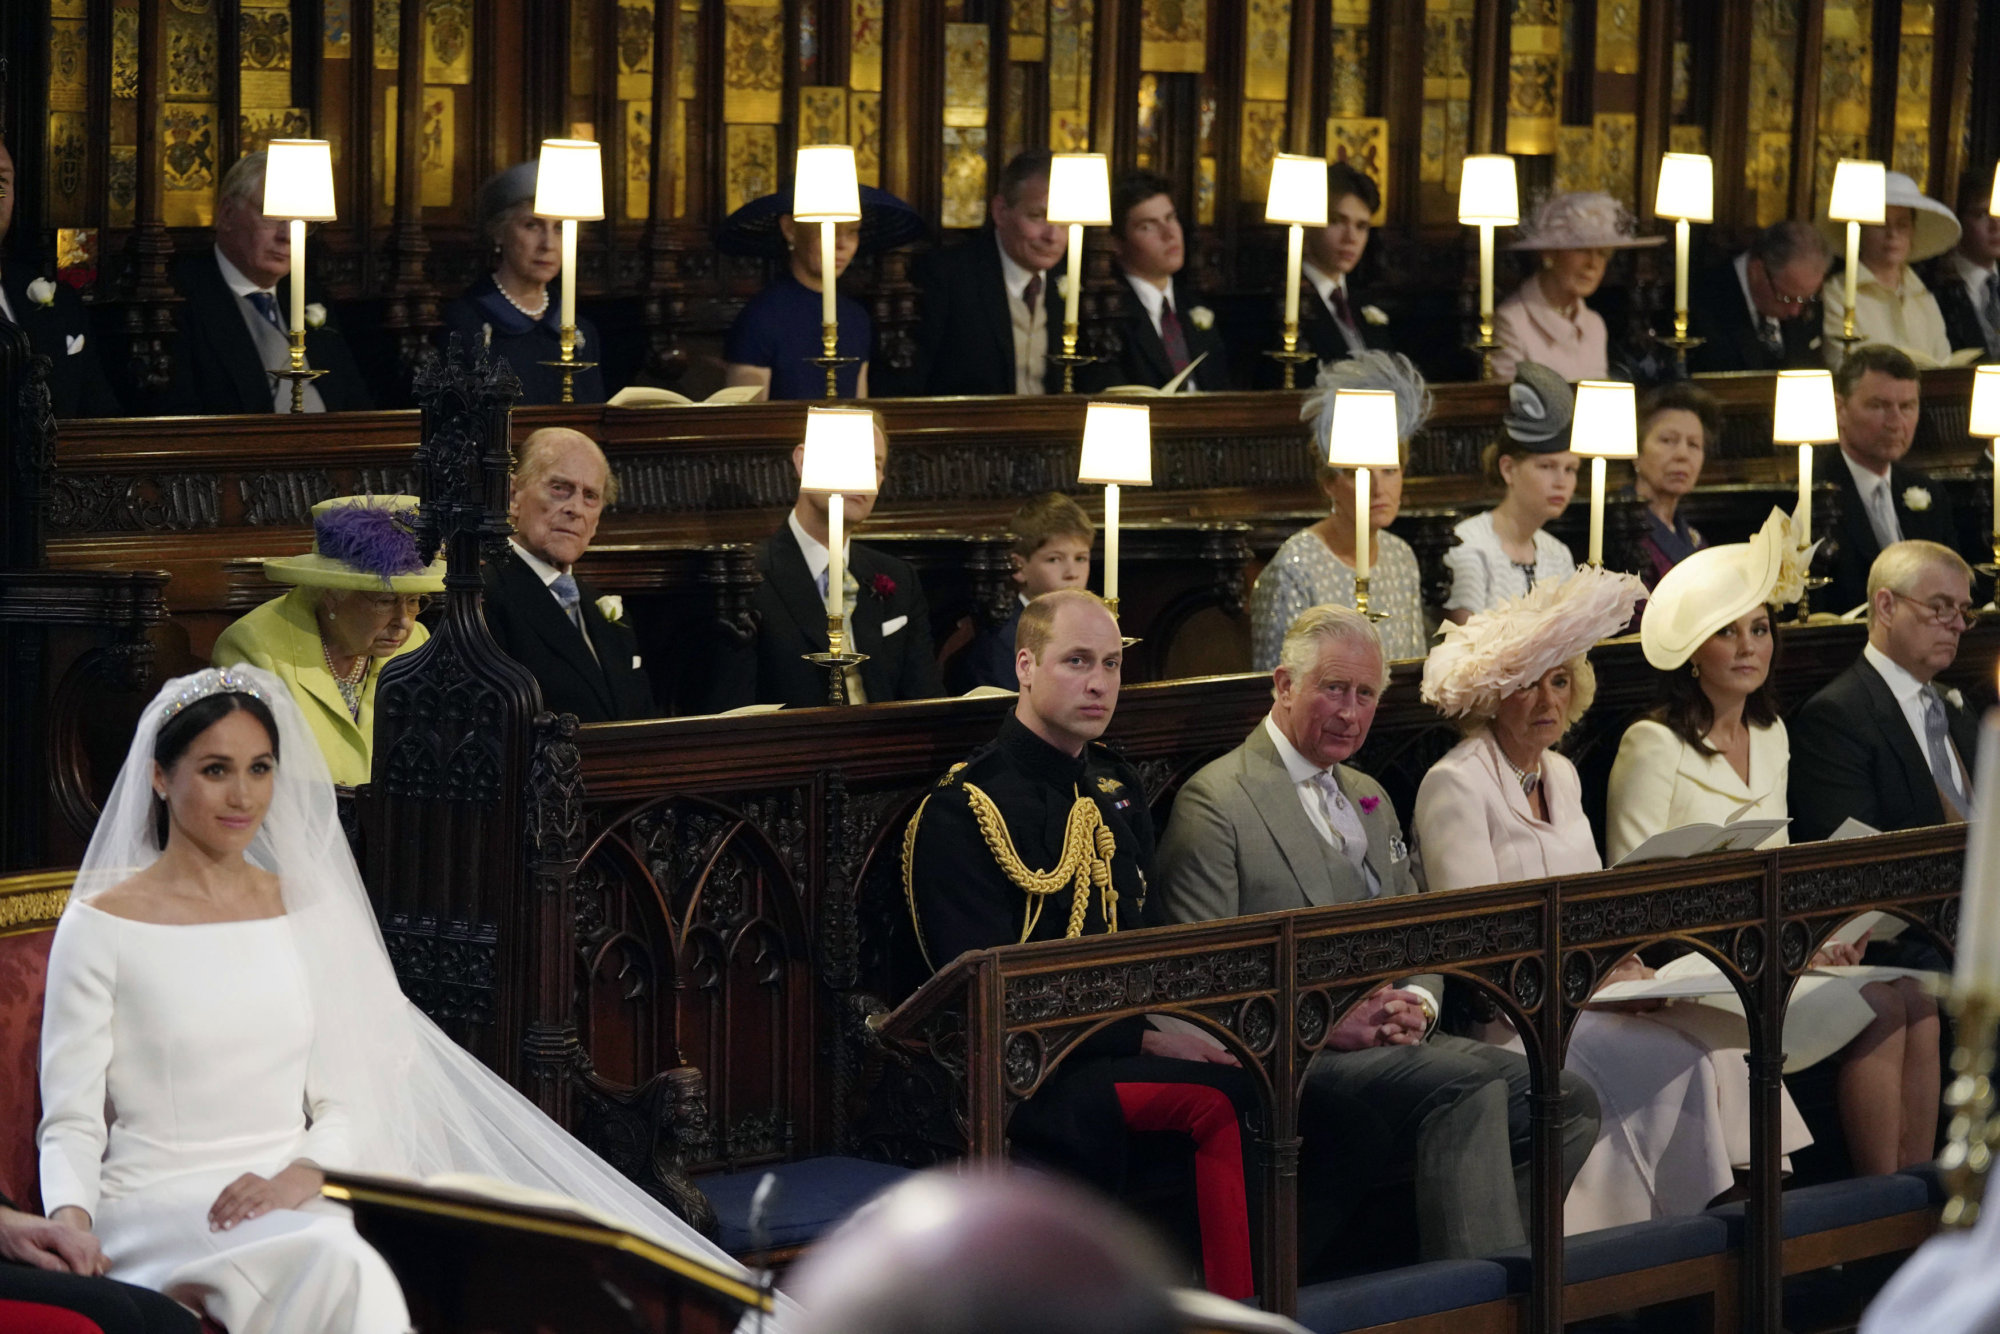 Meghan Markle, left, is watched by middle row from left, Queen Elizabeth, Prince Philip, Prince Edward, James, Viscount Severn, Sophie Countess of Wessex, Lady Louise Mountbatten-Windsor, Princess Anne and Tim Laurence, front row from left, Prince William, Prince Charles, Camilla Duchess of Cornwall, Kate Duchess of Cambridge and Prince Andrew during the wedding ceremony of Prince Harry and Meghan Markle at St. George's Chapel in Windsor Castle in Windsor, near London, England, Saturday, May 19, 2018. (Jonathan Brady/pool photo via AP)